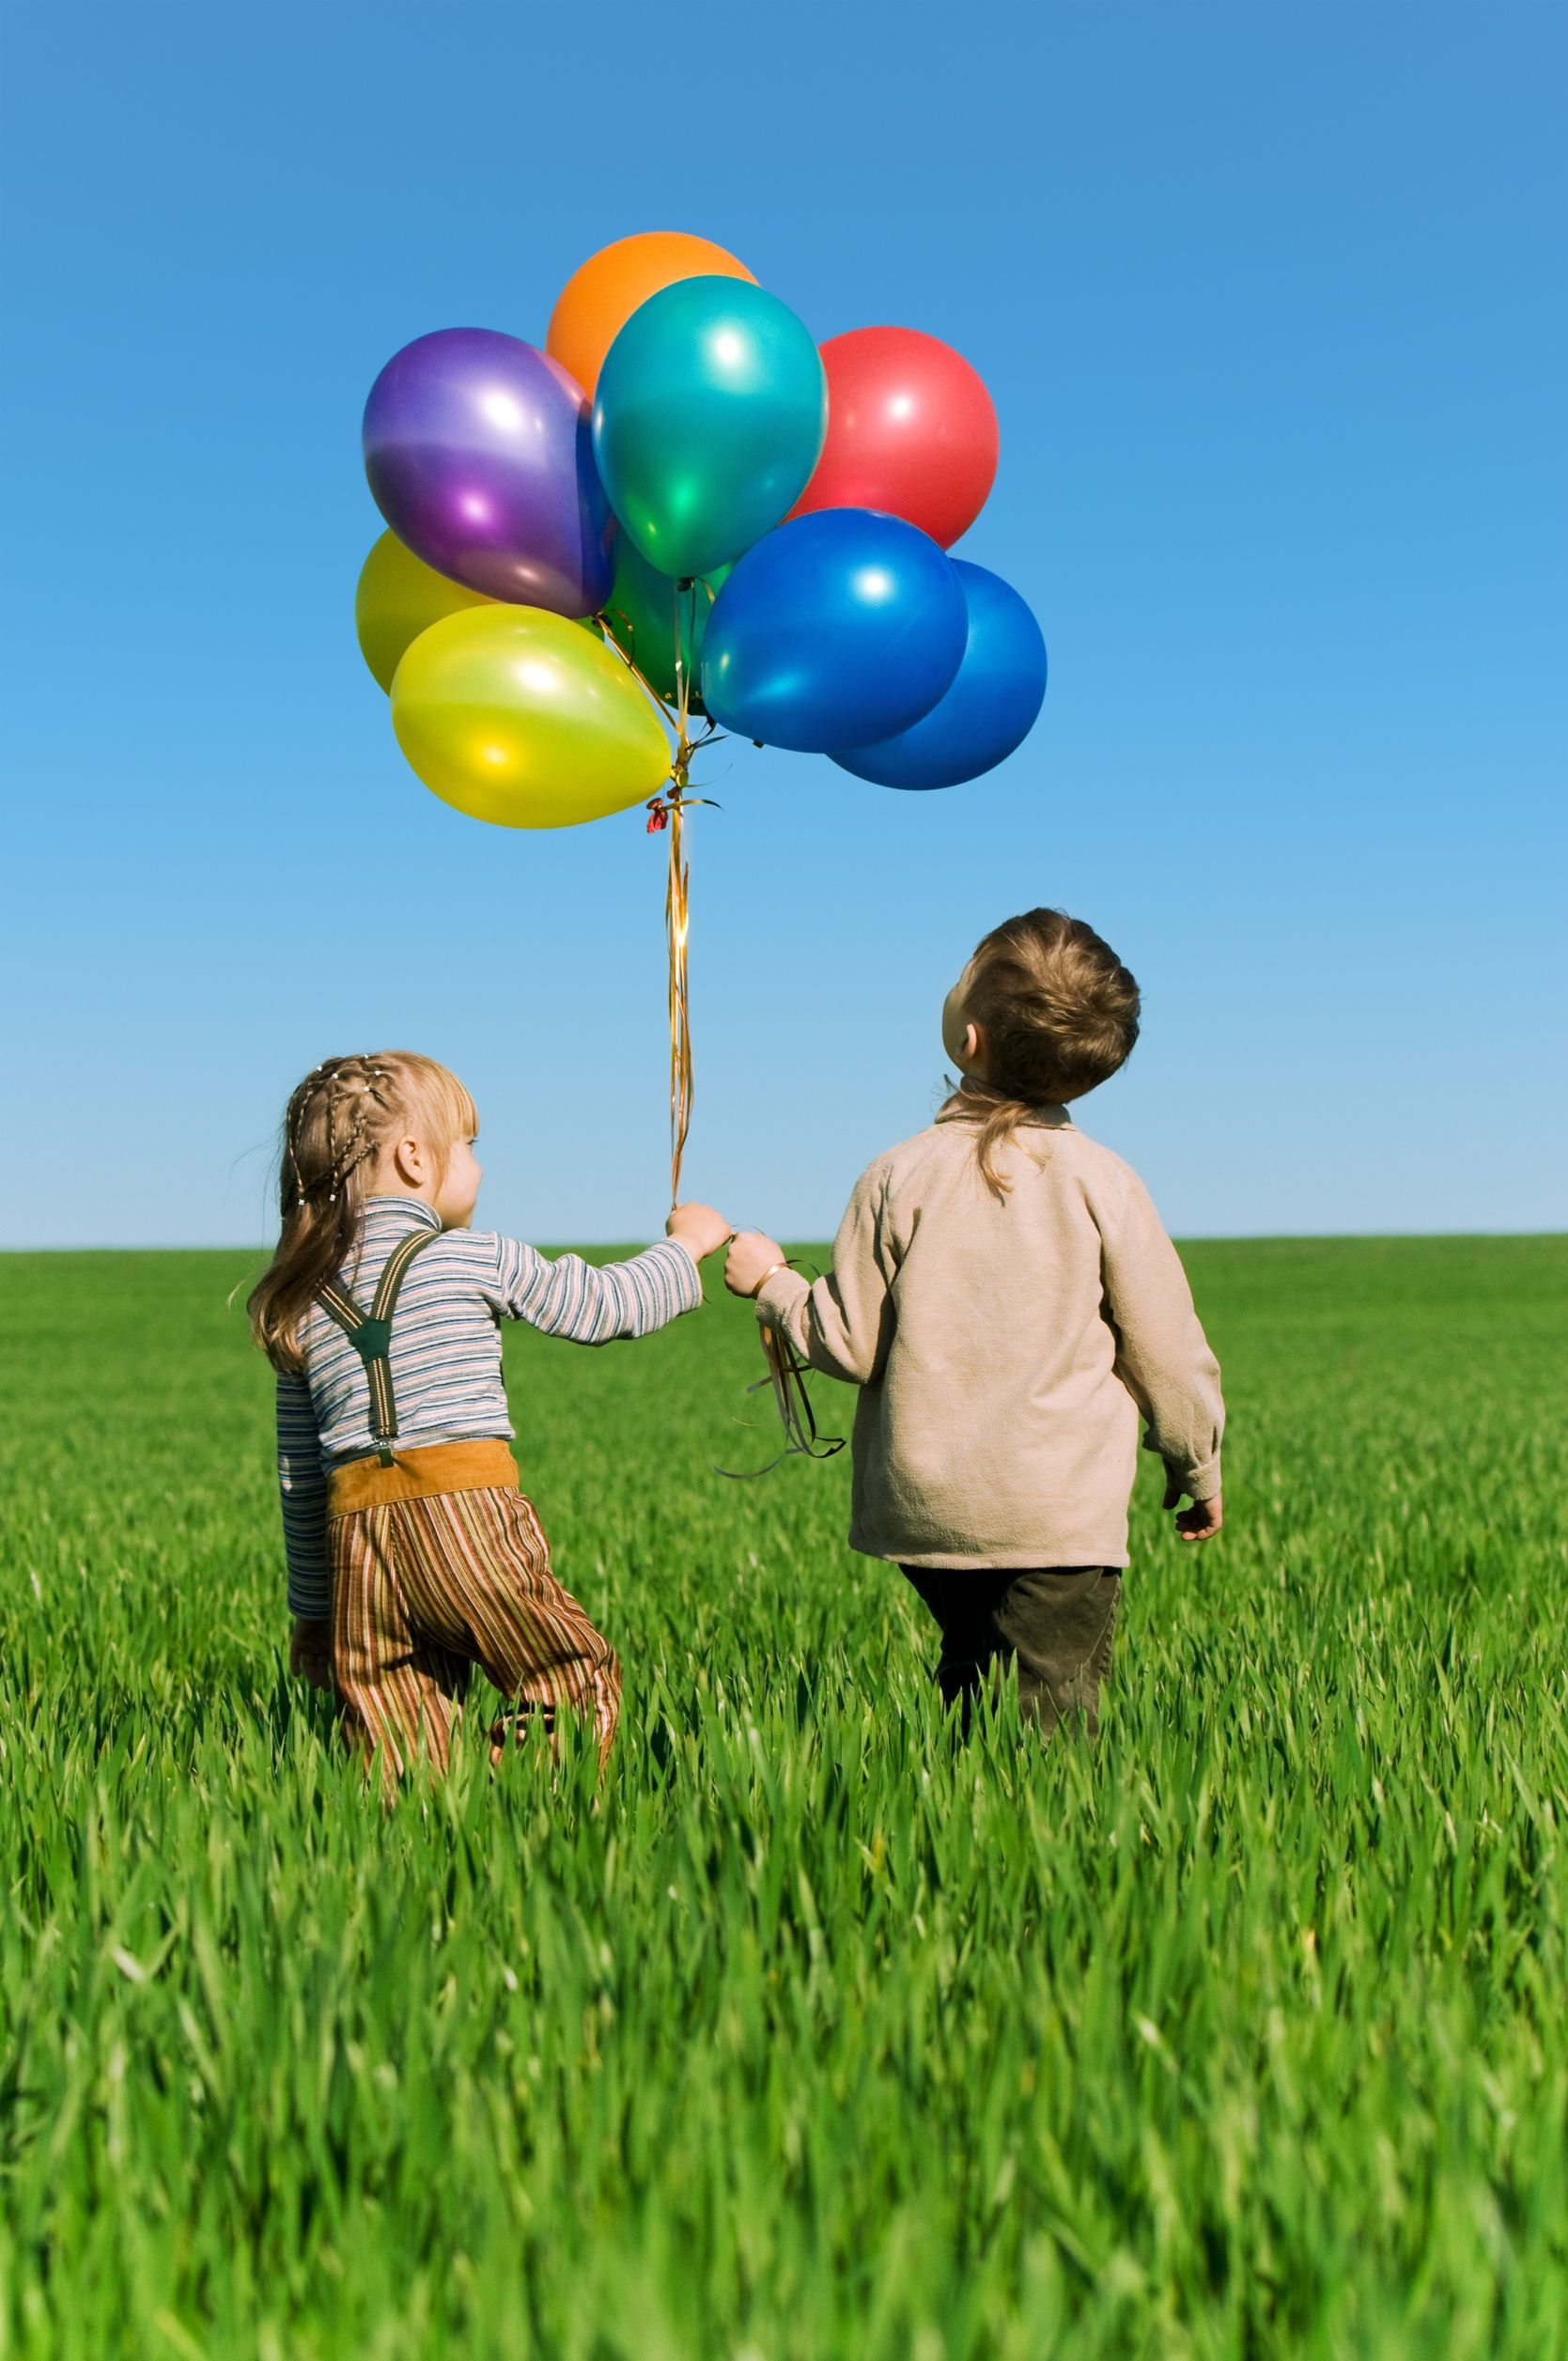 Kids walking away with balloons shoot1 pinterest for Balloon ideas for kids